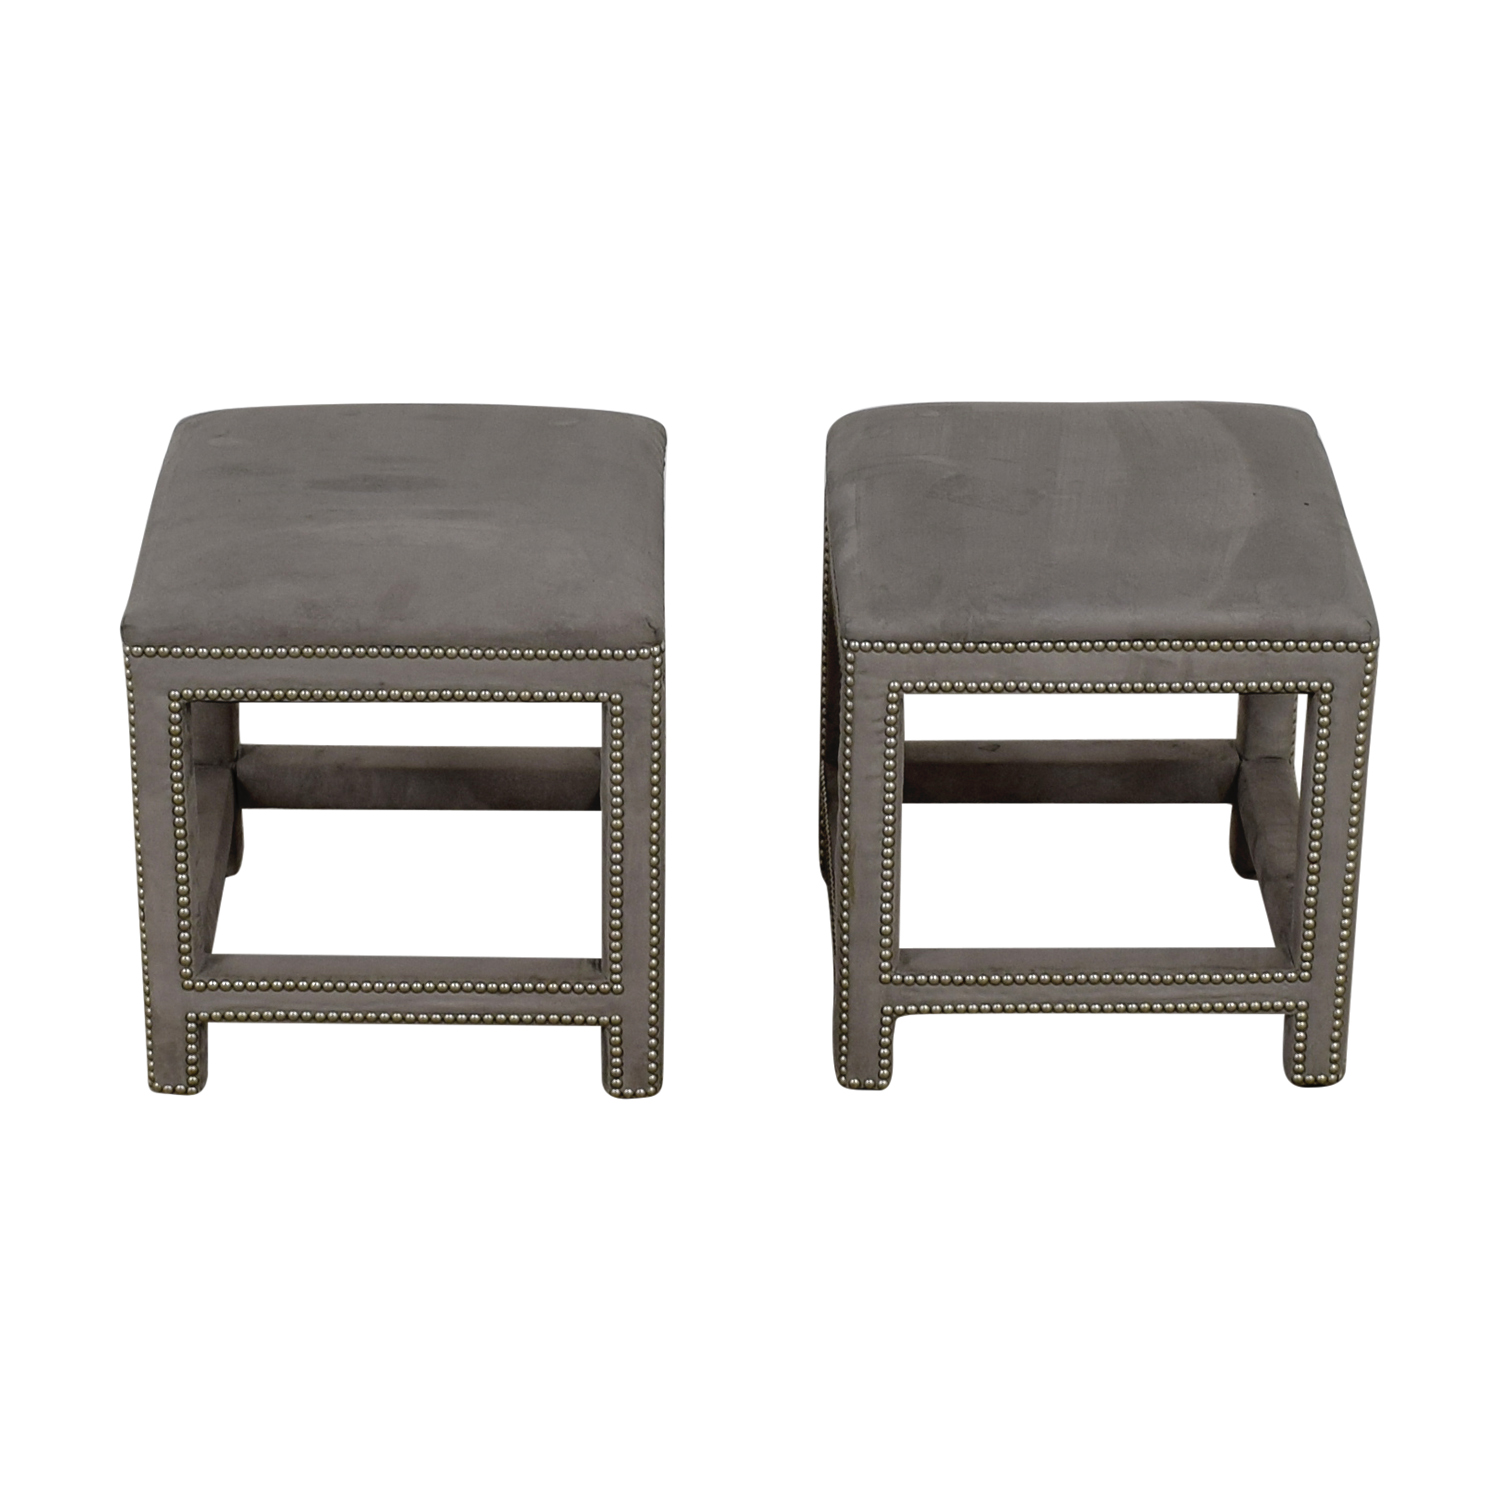 Lillian August Grey Suede Nailhead Ottomans or Stools sale